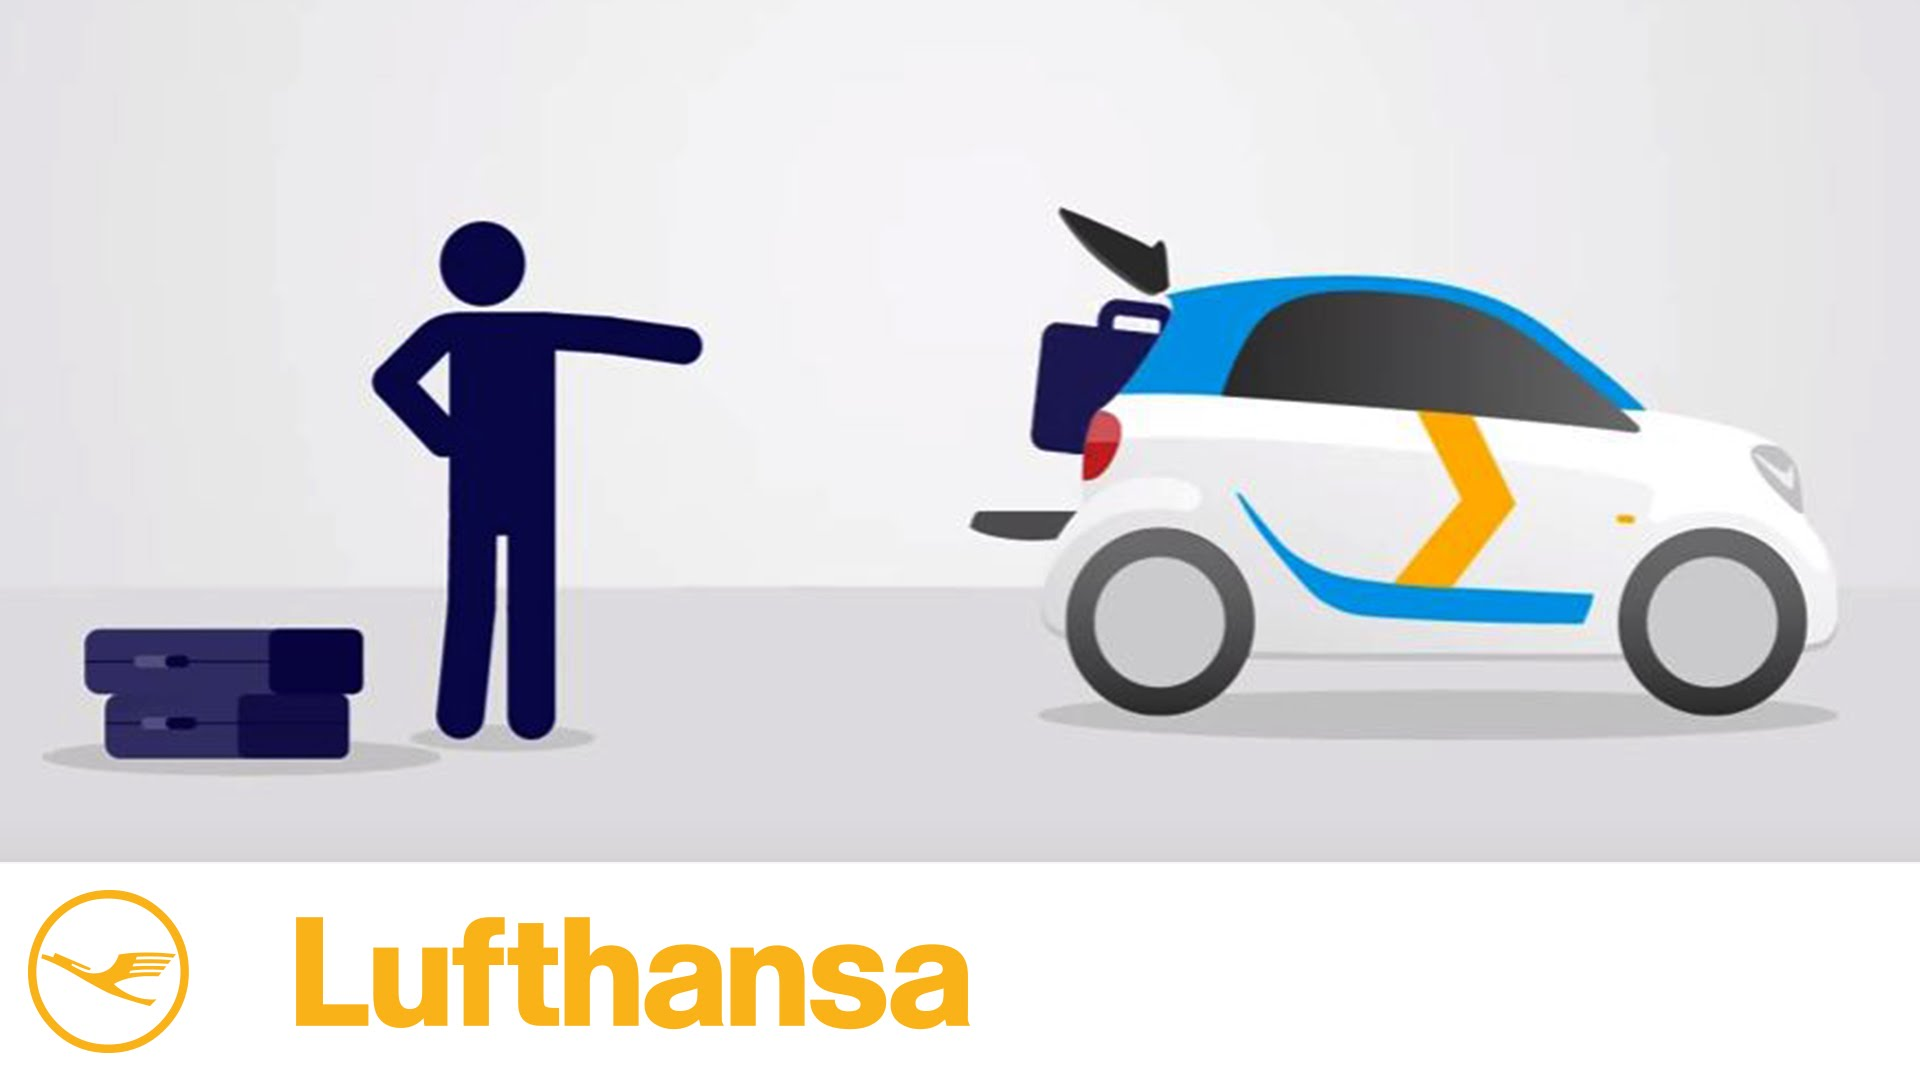 How to: Lufthansa Express Carsharing in cooperation with car2go.